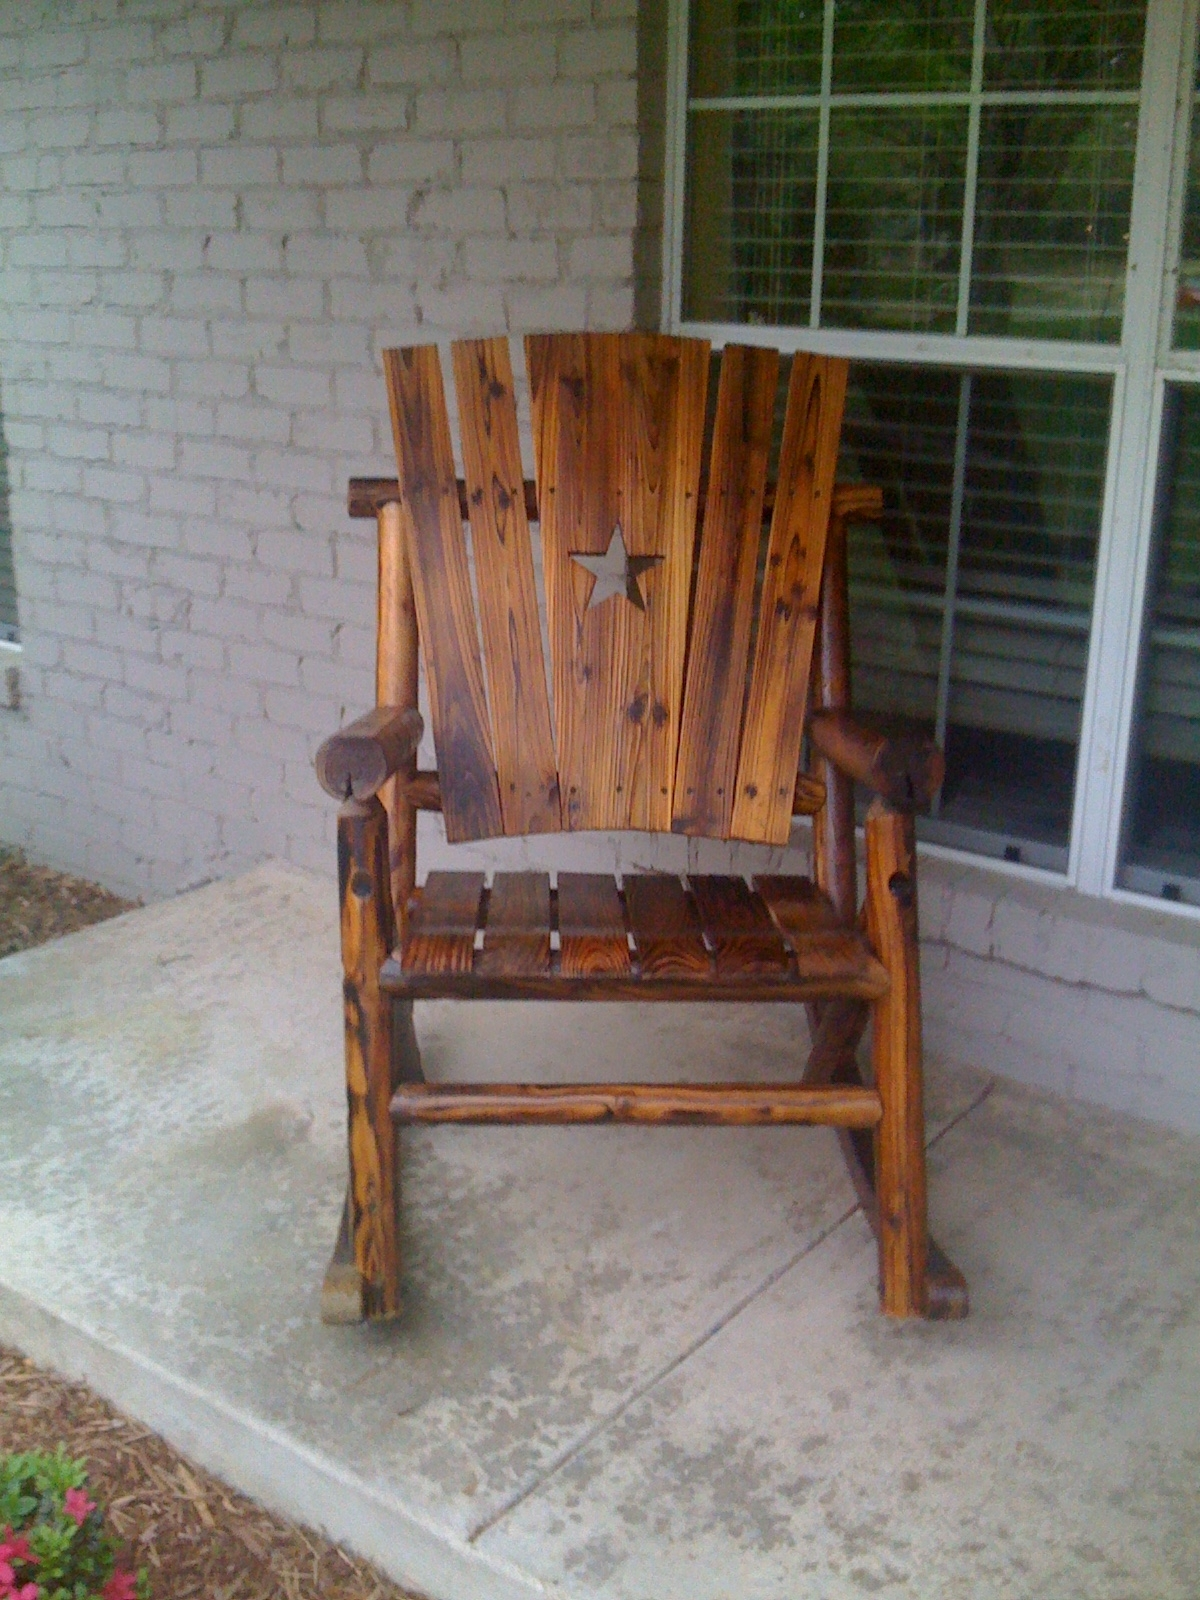 Fashionable Rocking Chair Outdoor Wooden Throughout Outdoor Wooden Rocking Chairs Models : Pleasure Outdoor Wooden (View 10 of 20)